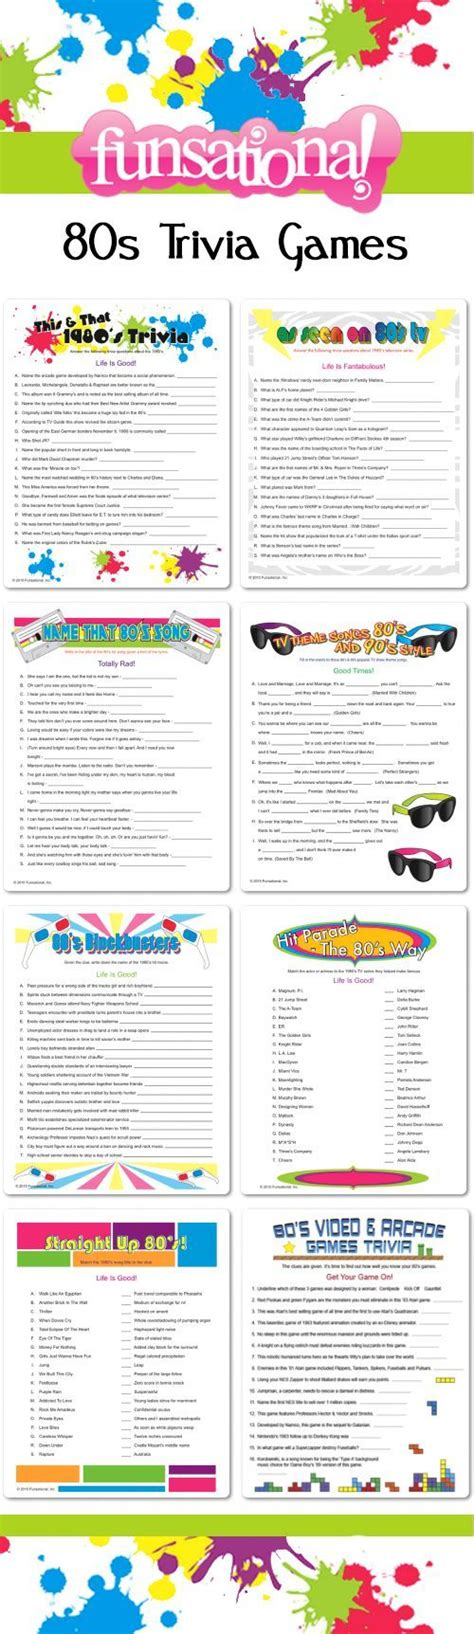 theme party quiz 80s trivia games from funsational personalize each one